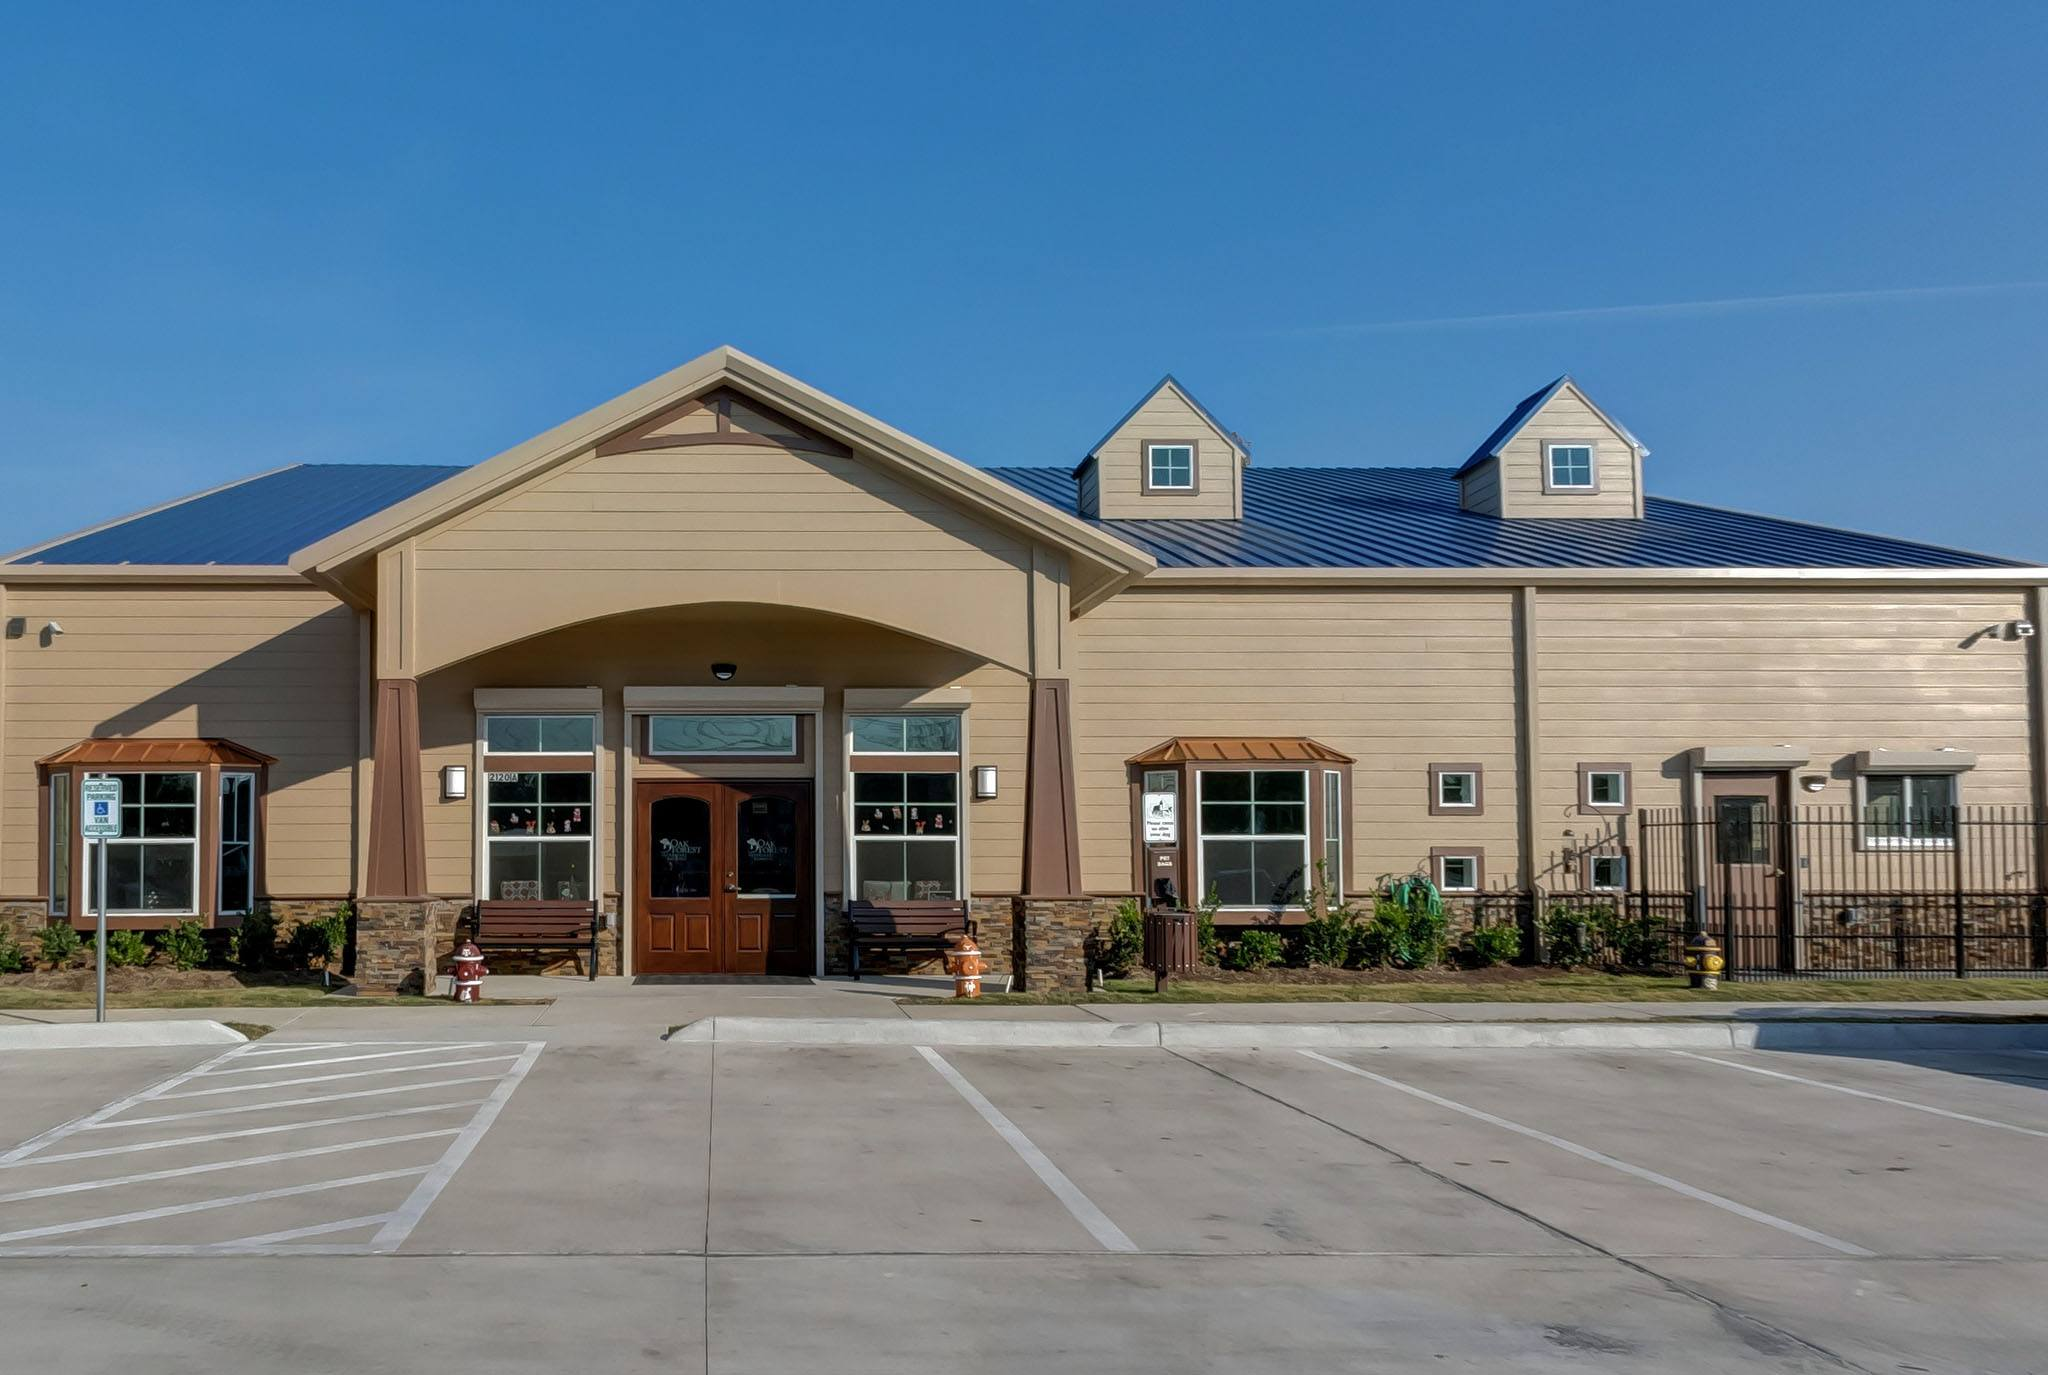 Front of Building - Houston, TX - Oak Forest Veterinary Hospital